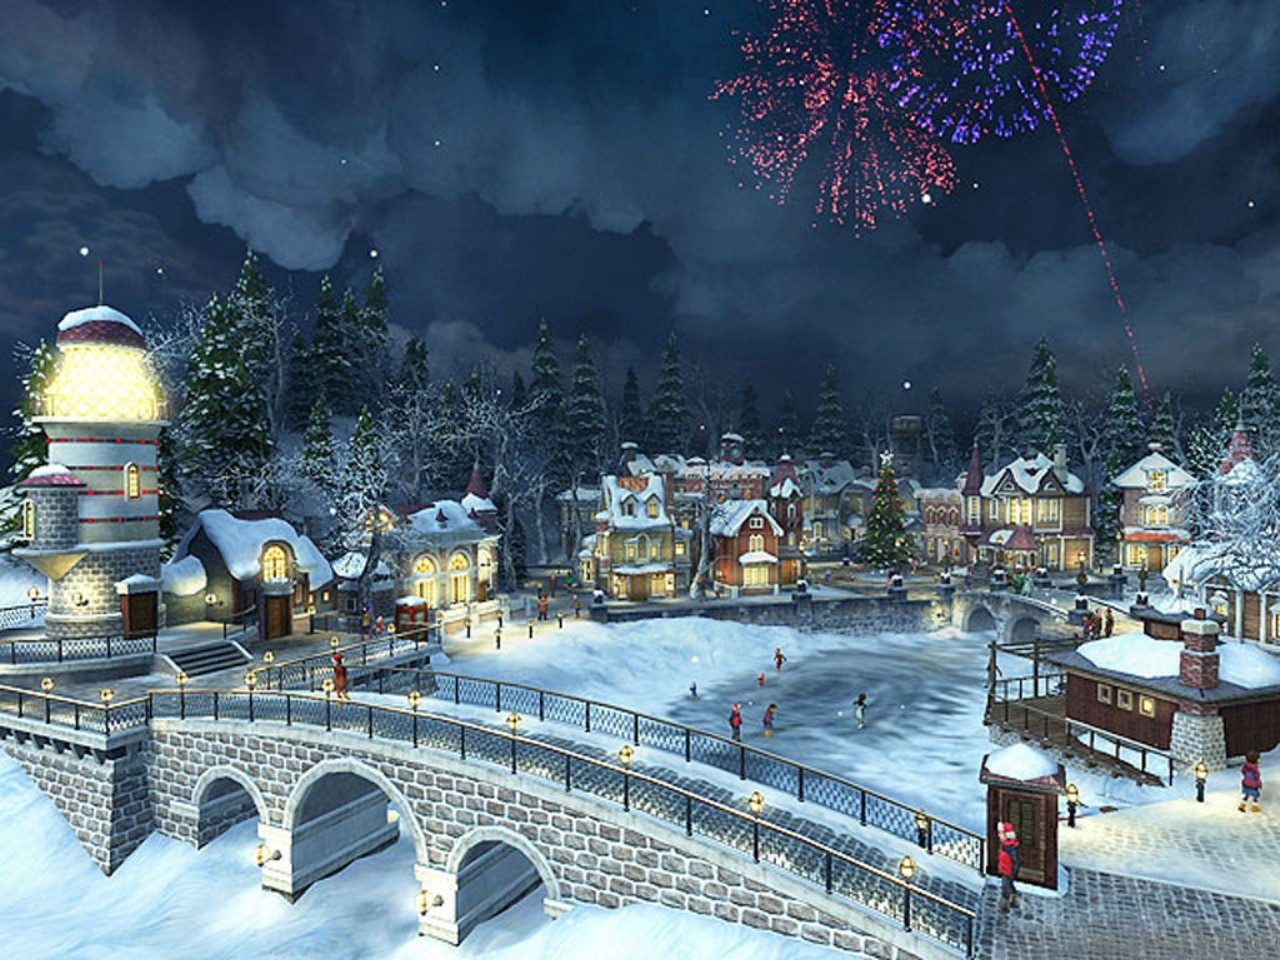 CHRISTMAS VILLAGE wallpaper   ForWallpapercom 1280x960